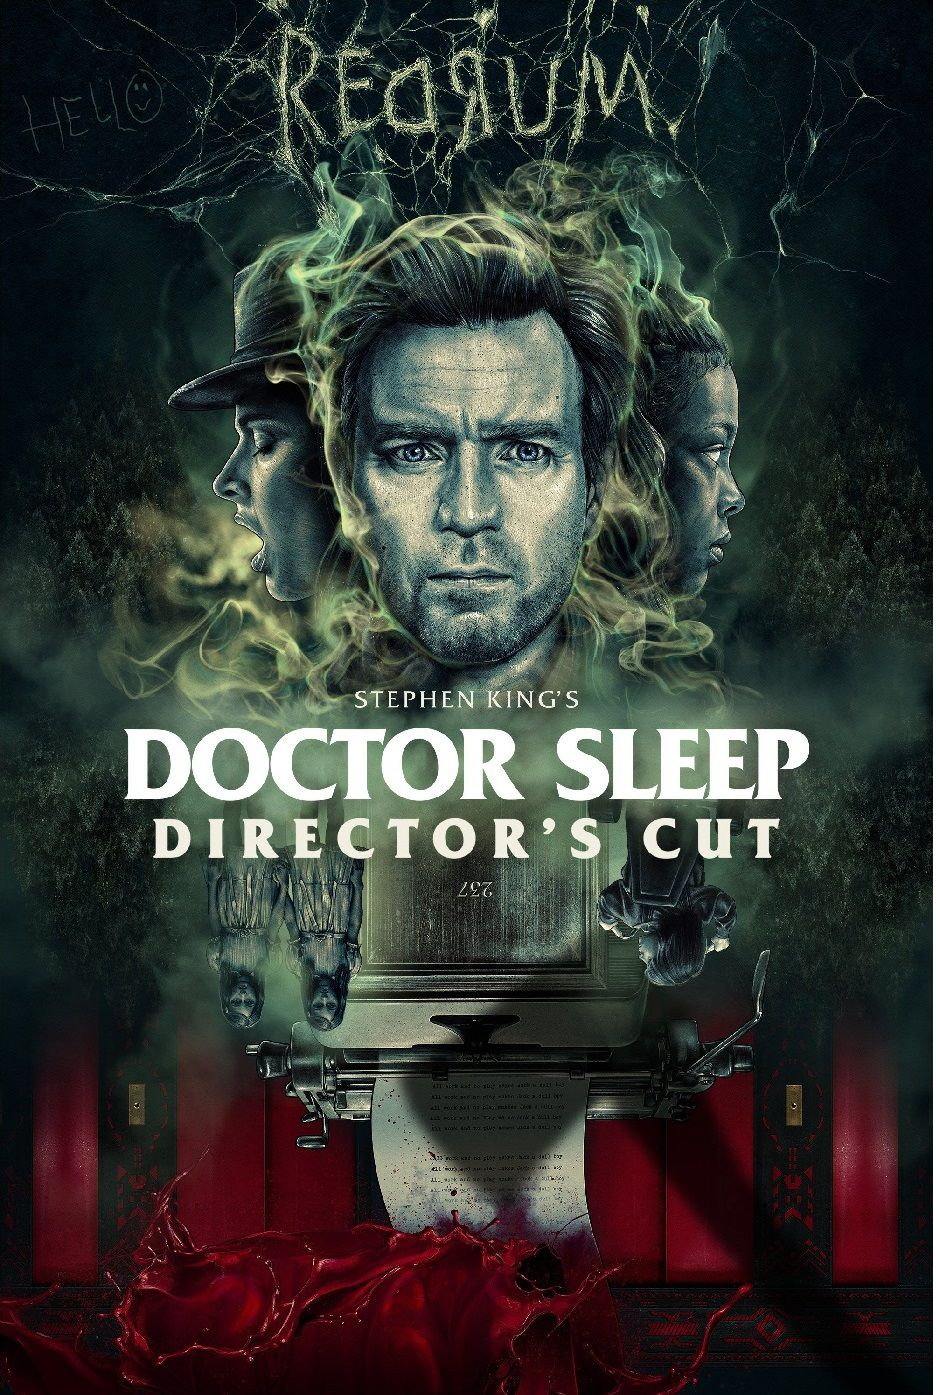 Doctor Sleep (Version longue) - Film (2020) streaming VF gratuit complet